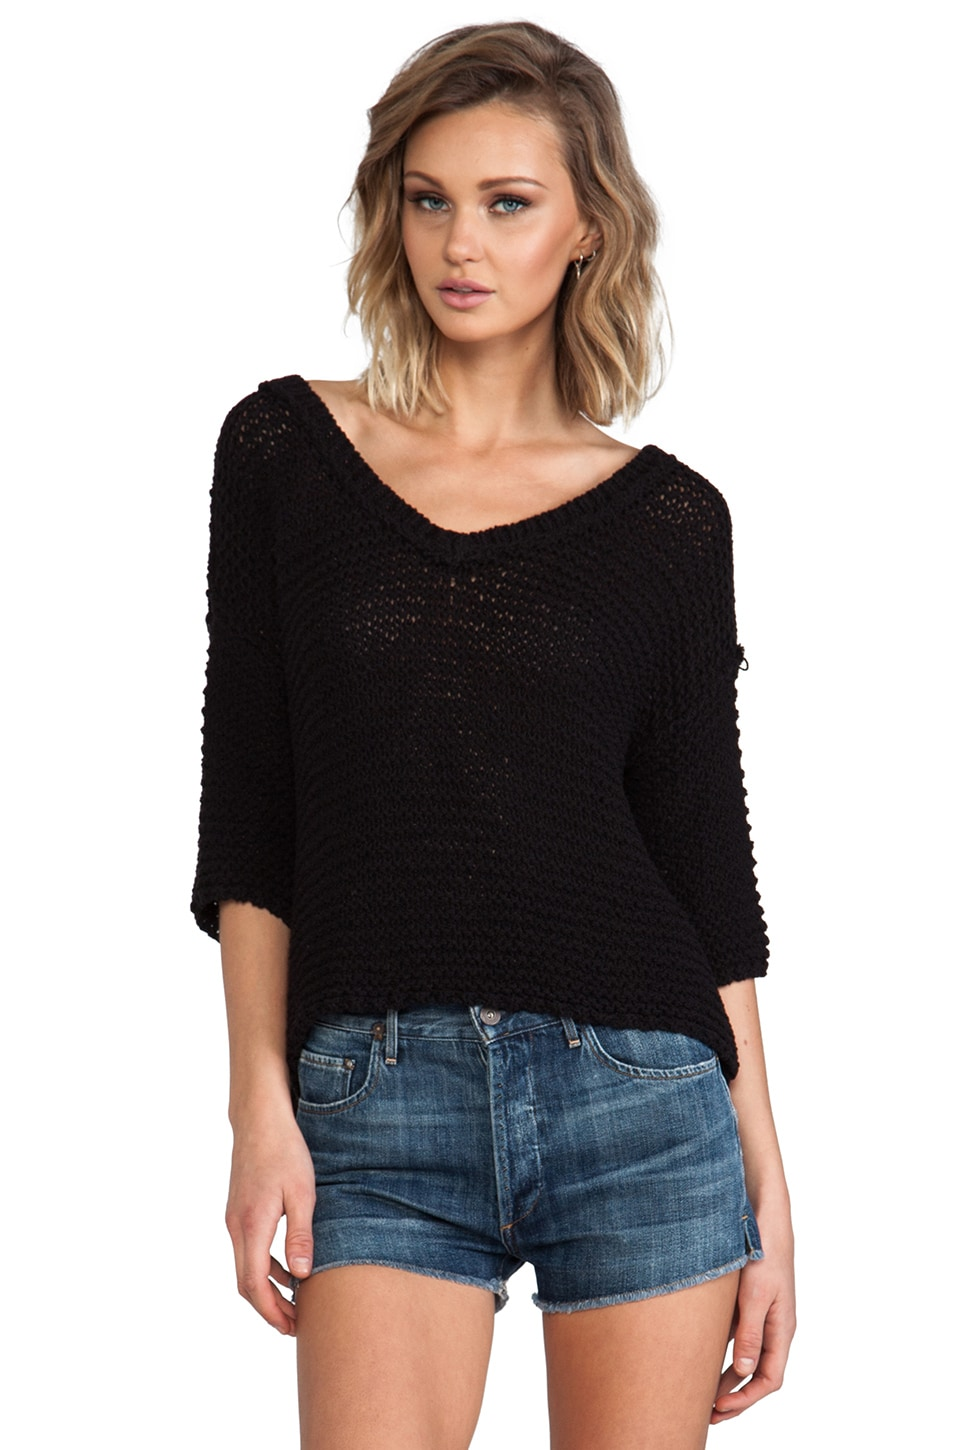 Free People Park Slope Sweater in Black